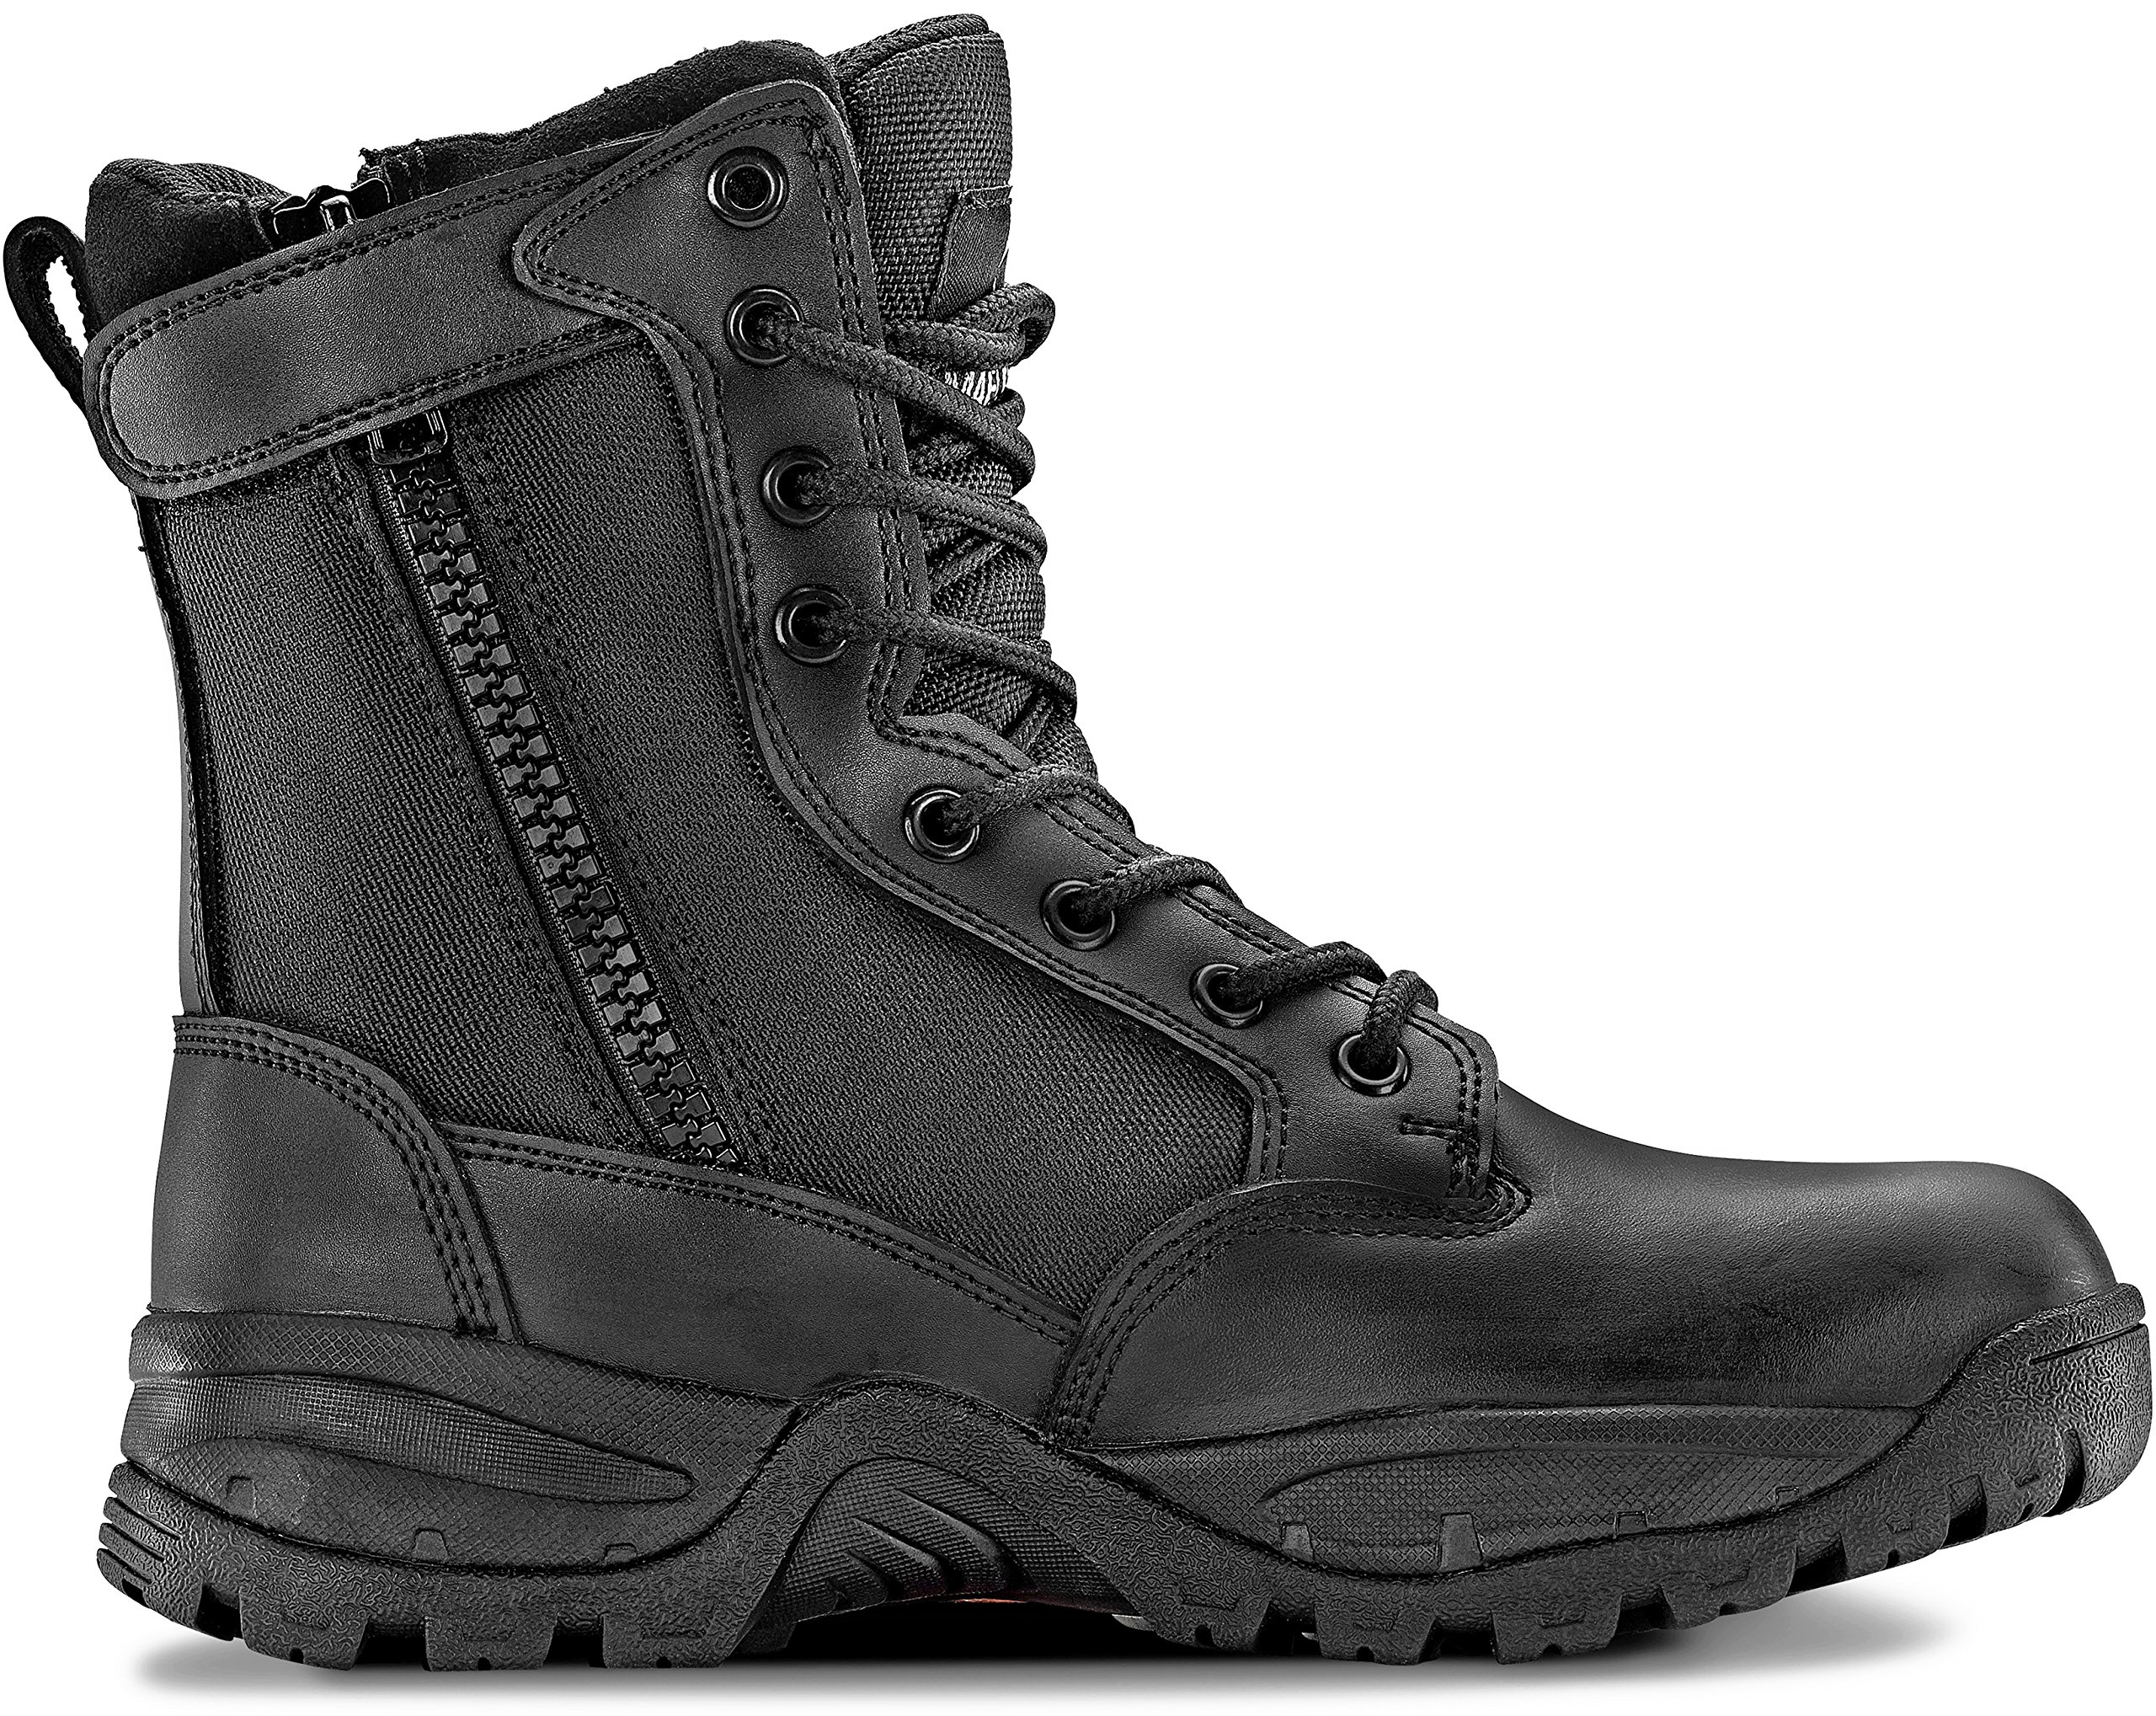 Maelstrom Tac Force 8'' Women's Black Waterproof Boots With Zipper – Military, Work & Tactical Boots – Athletic, Breathable, Durable, Comfortable & Lightweight Boots For Women, Size 8.5M by Maelstrom (Image #1)